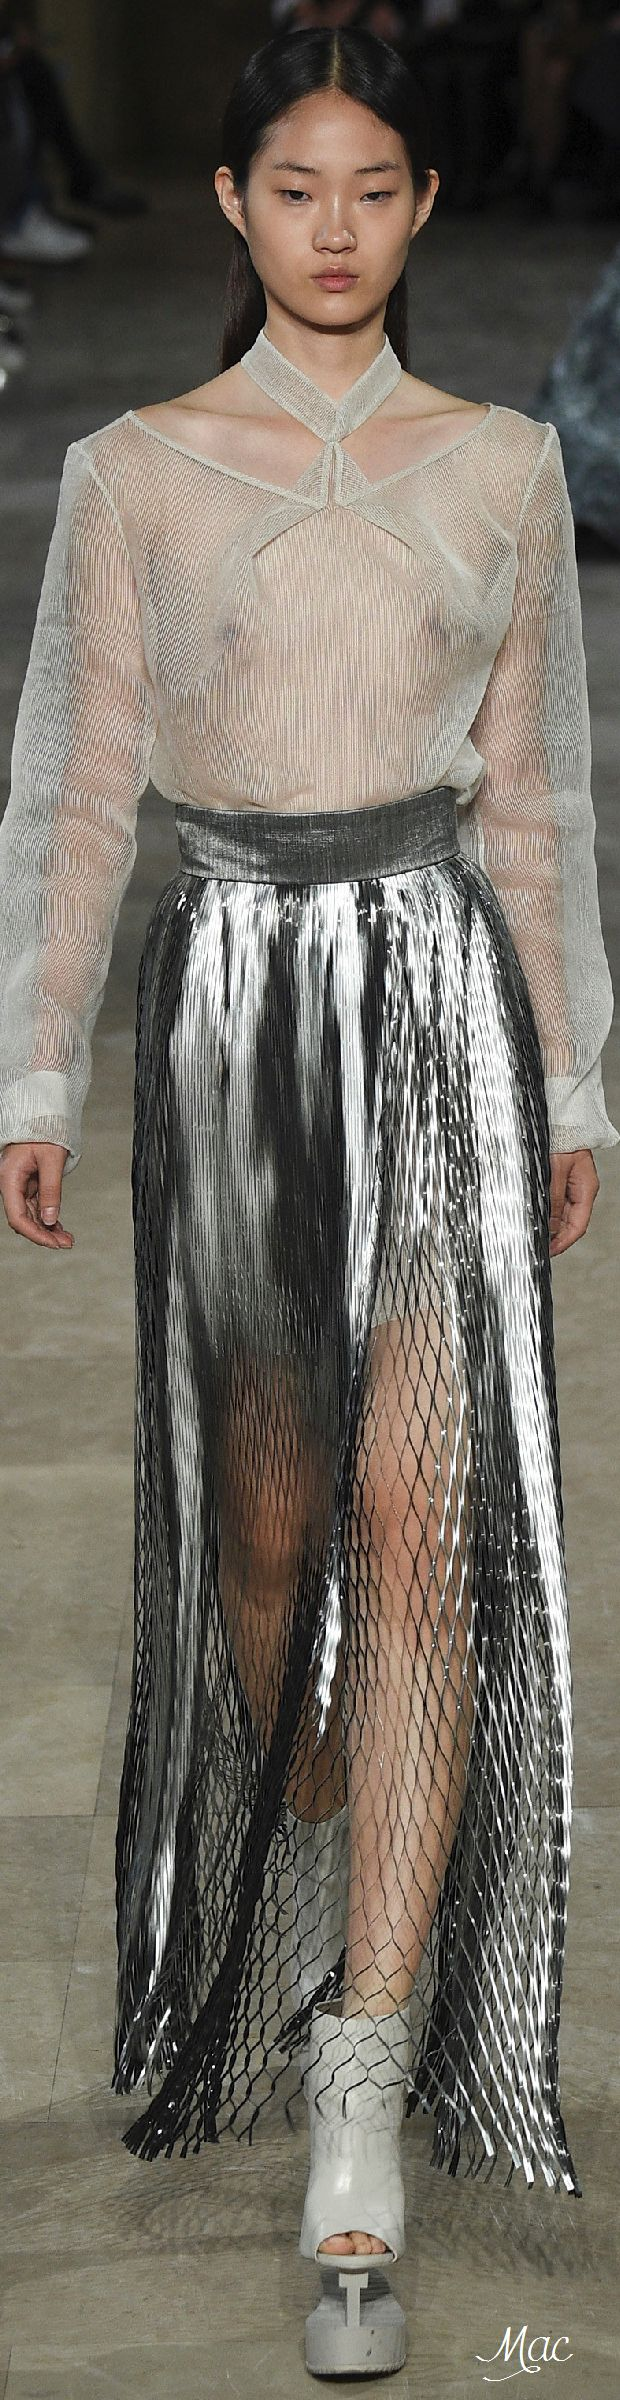 Spring 2016 Ready-to-Wear Iris van Herpen